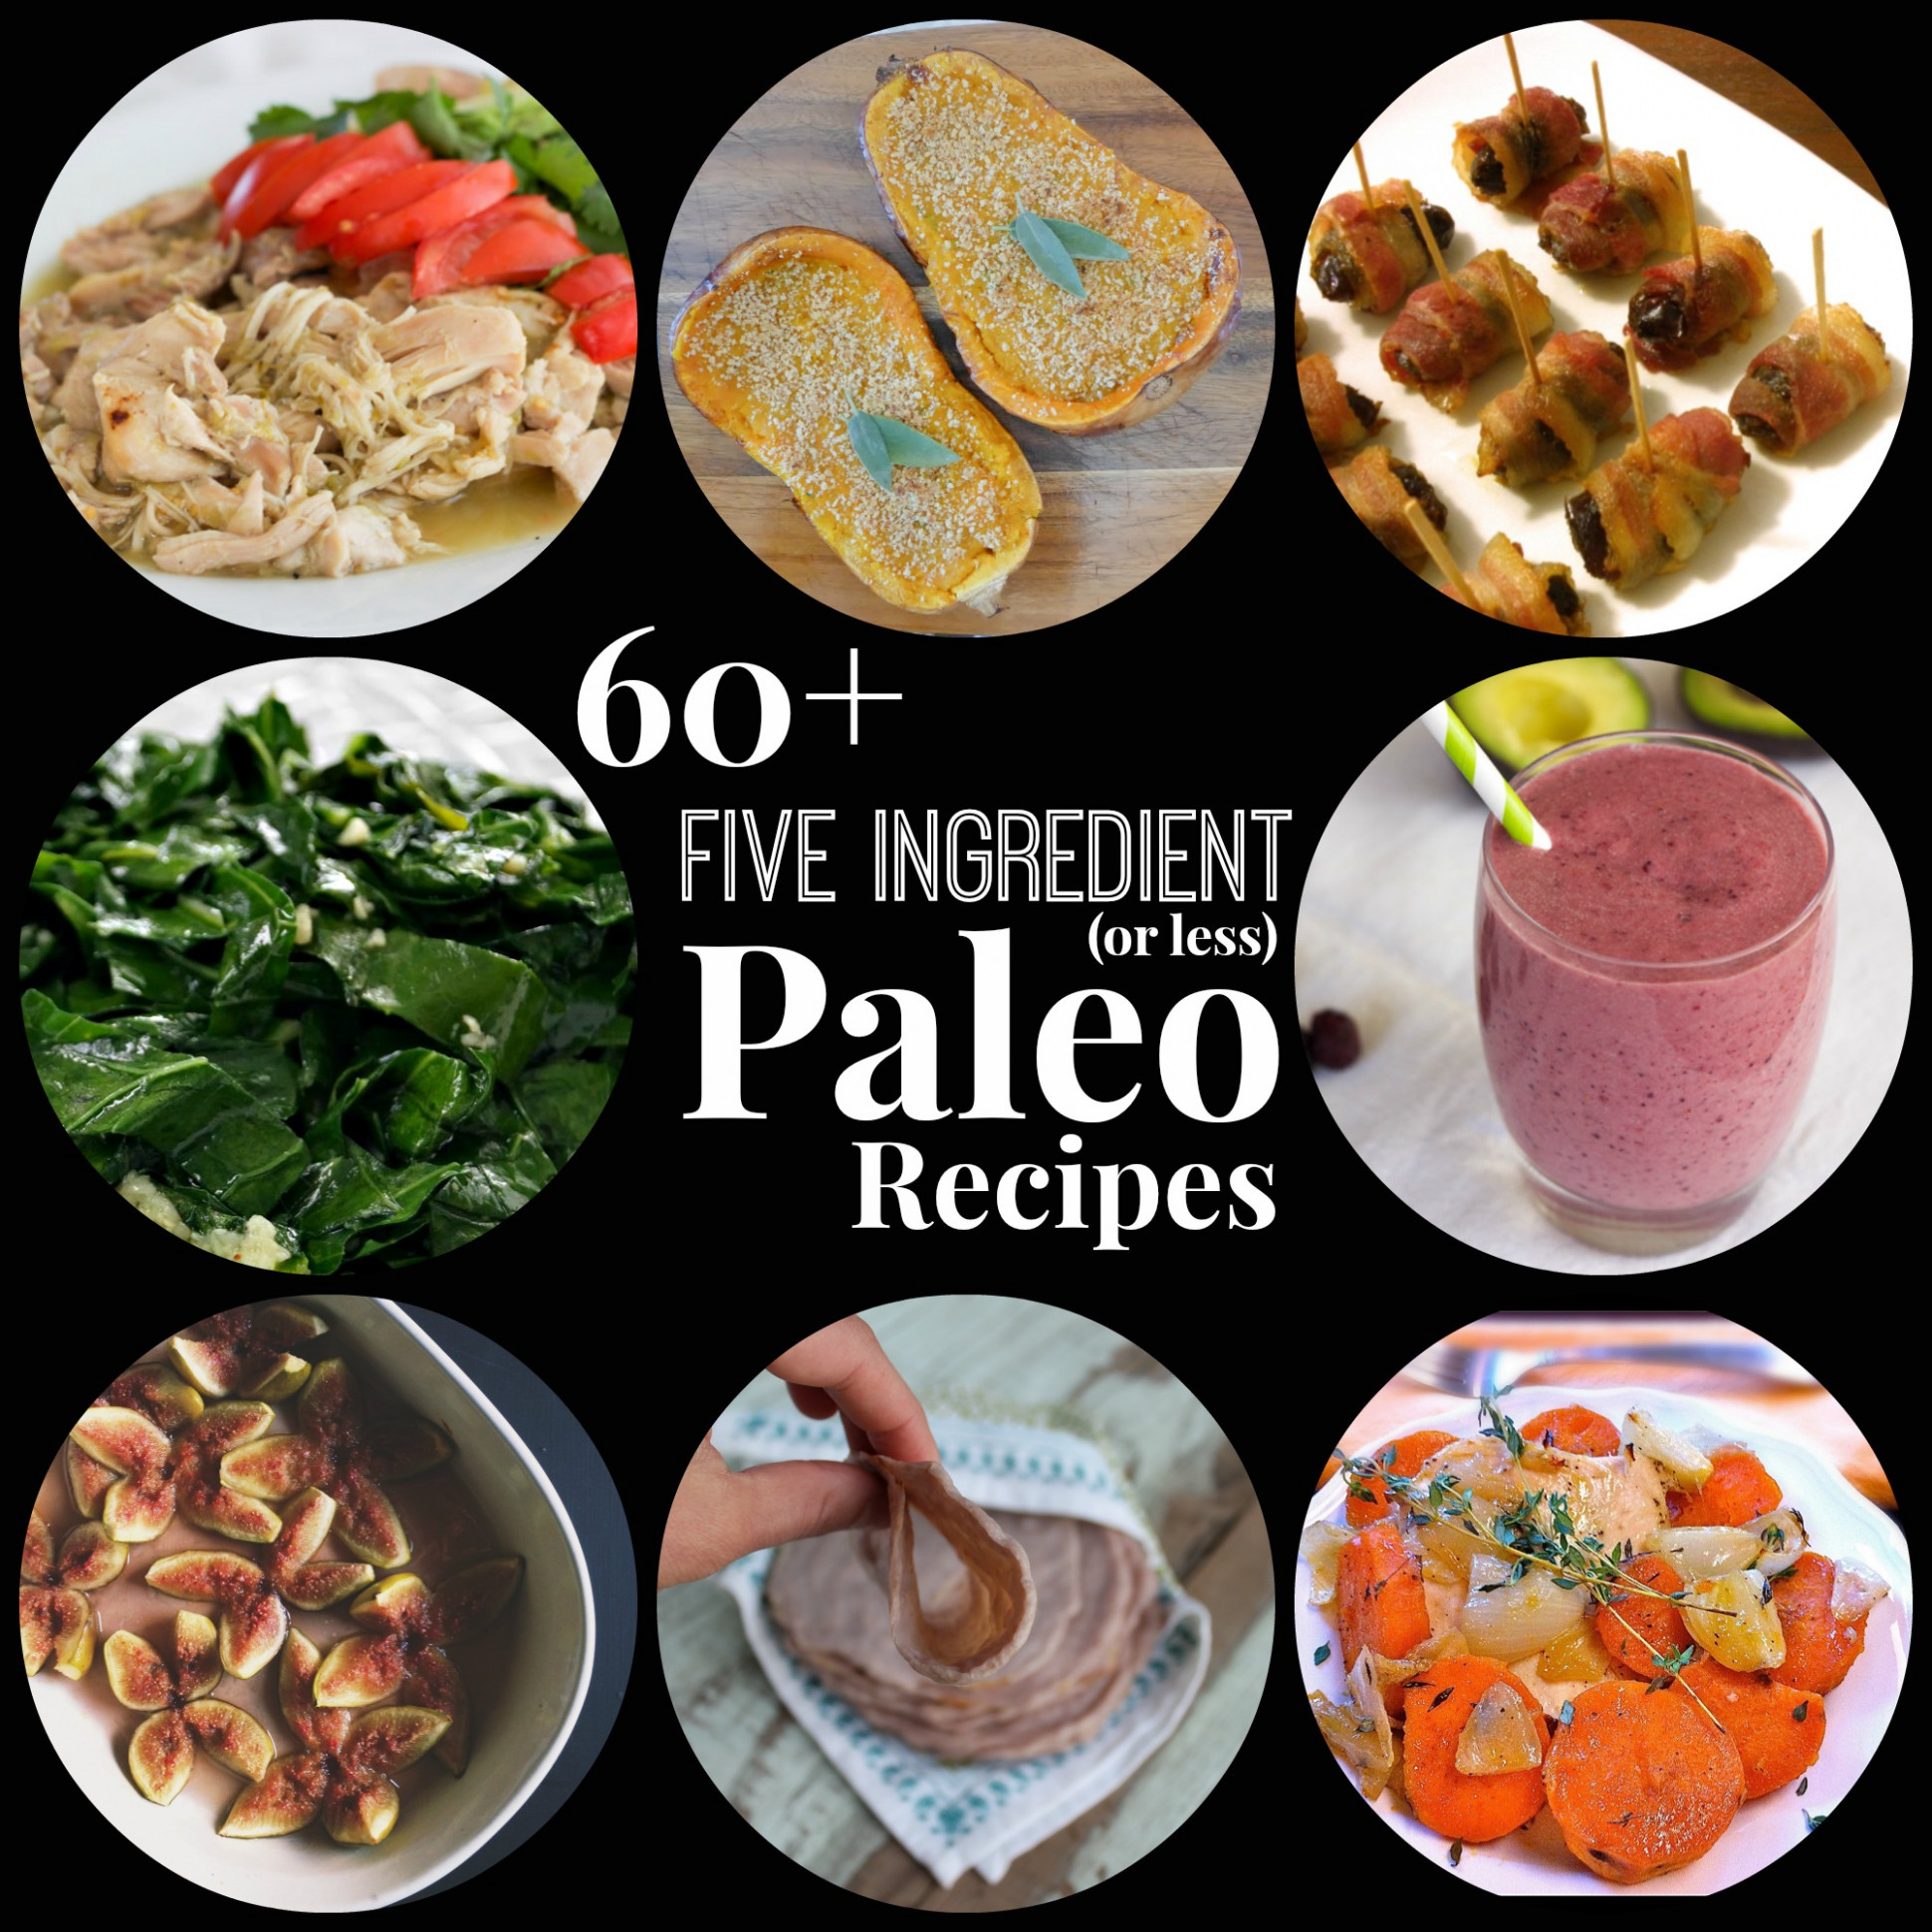 60+ Five Ingredient (or Less) Paleo Recipes - Rubies ..